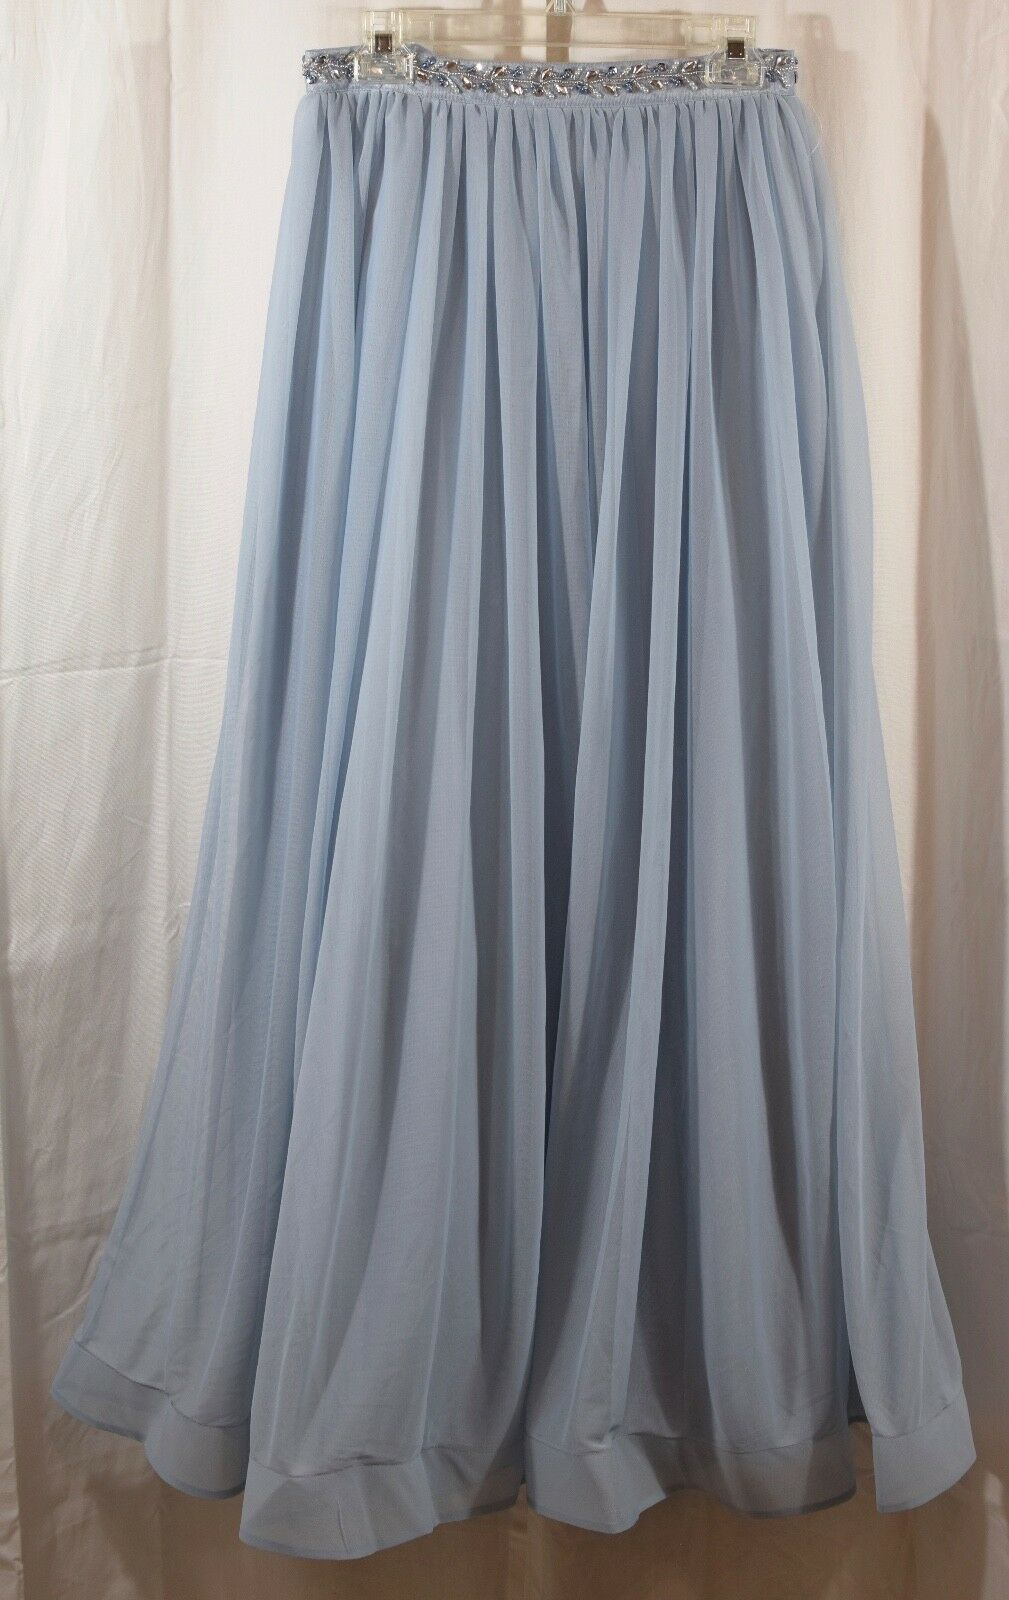 Sequin Hearts Fairy bluee Two-Piece Long Prom Dress Skirt Only Size 5